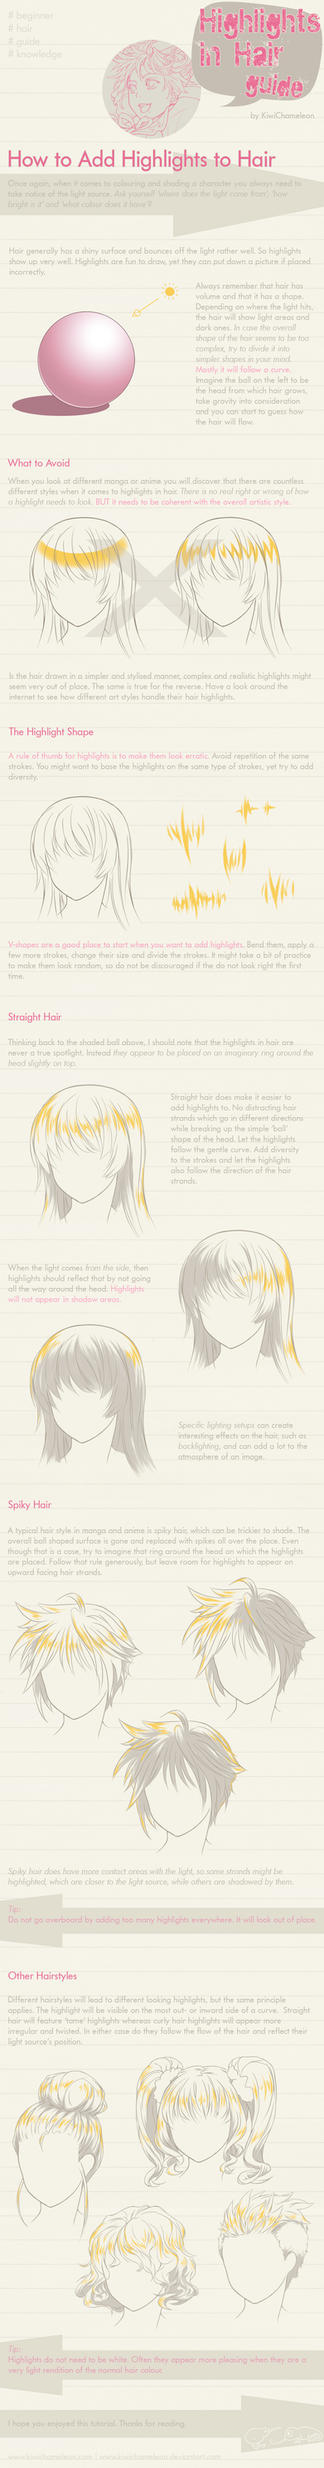 Highlights in Hair - guide by KiwiChameleon